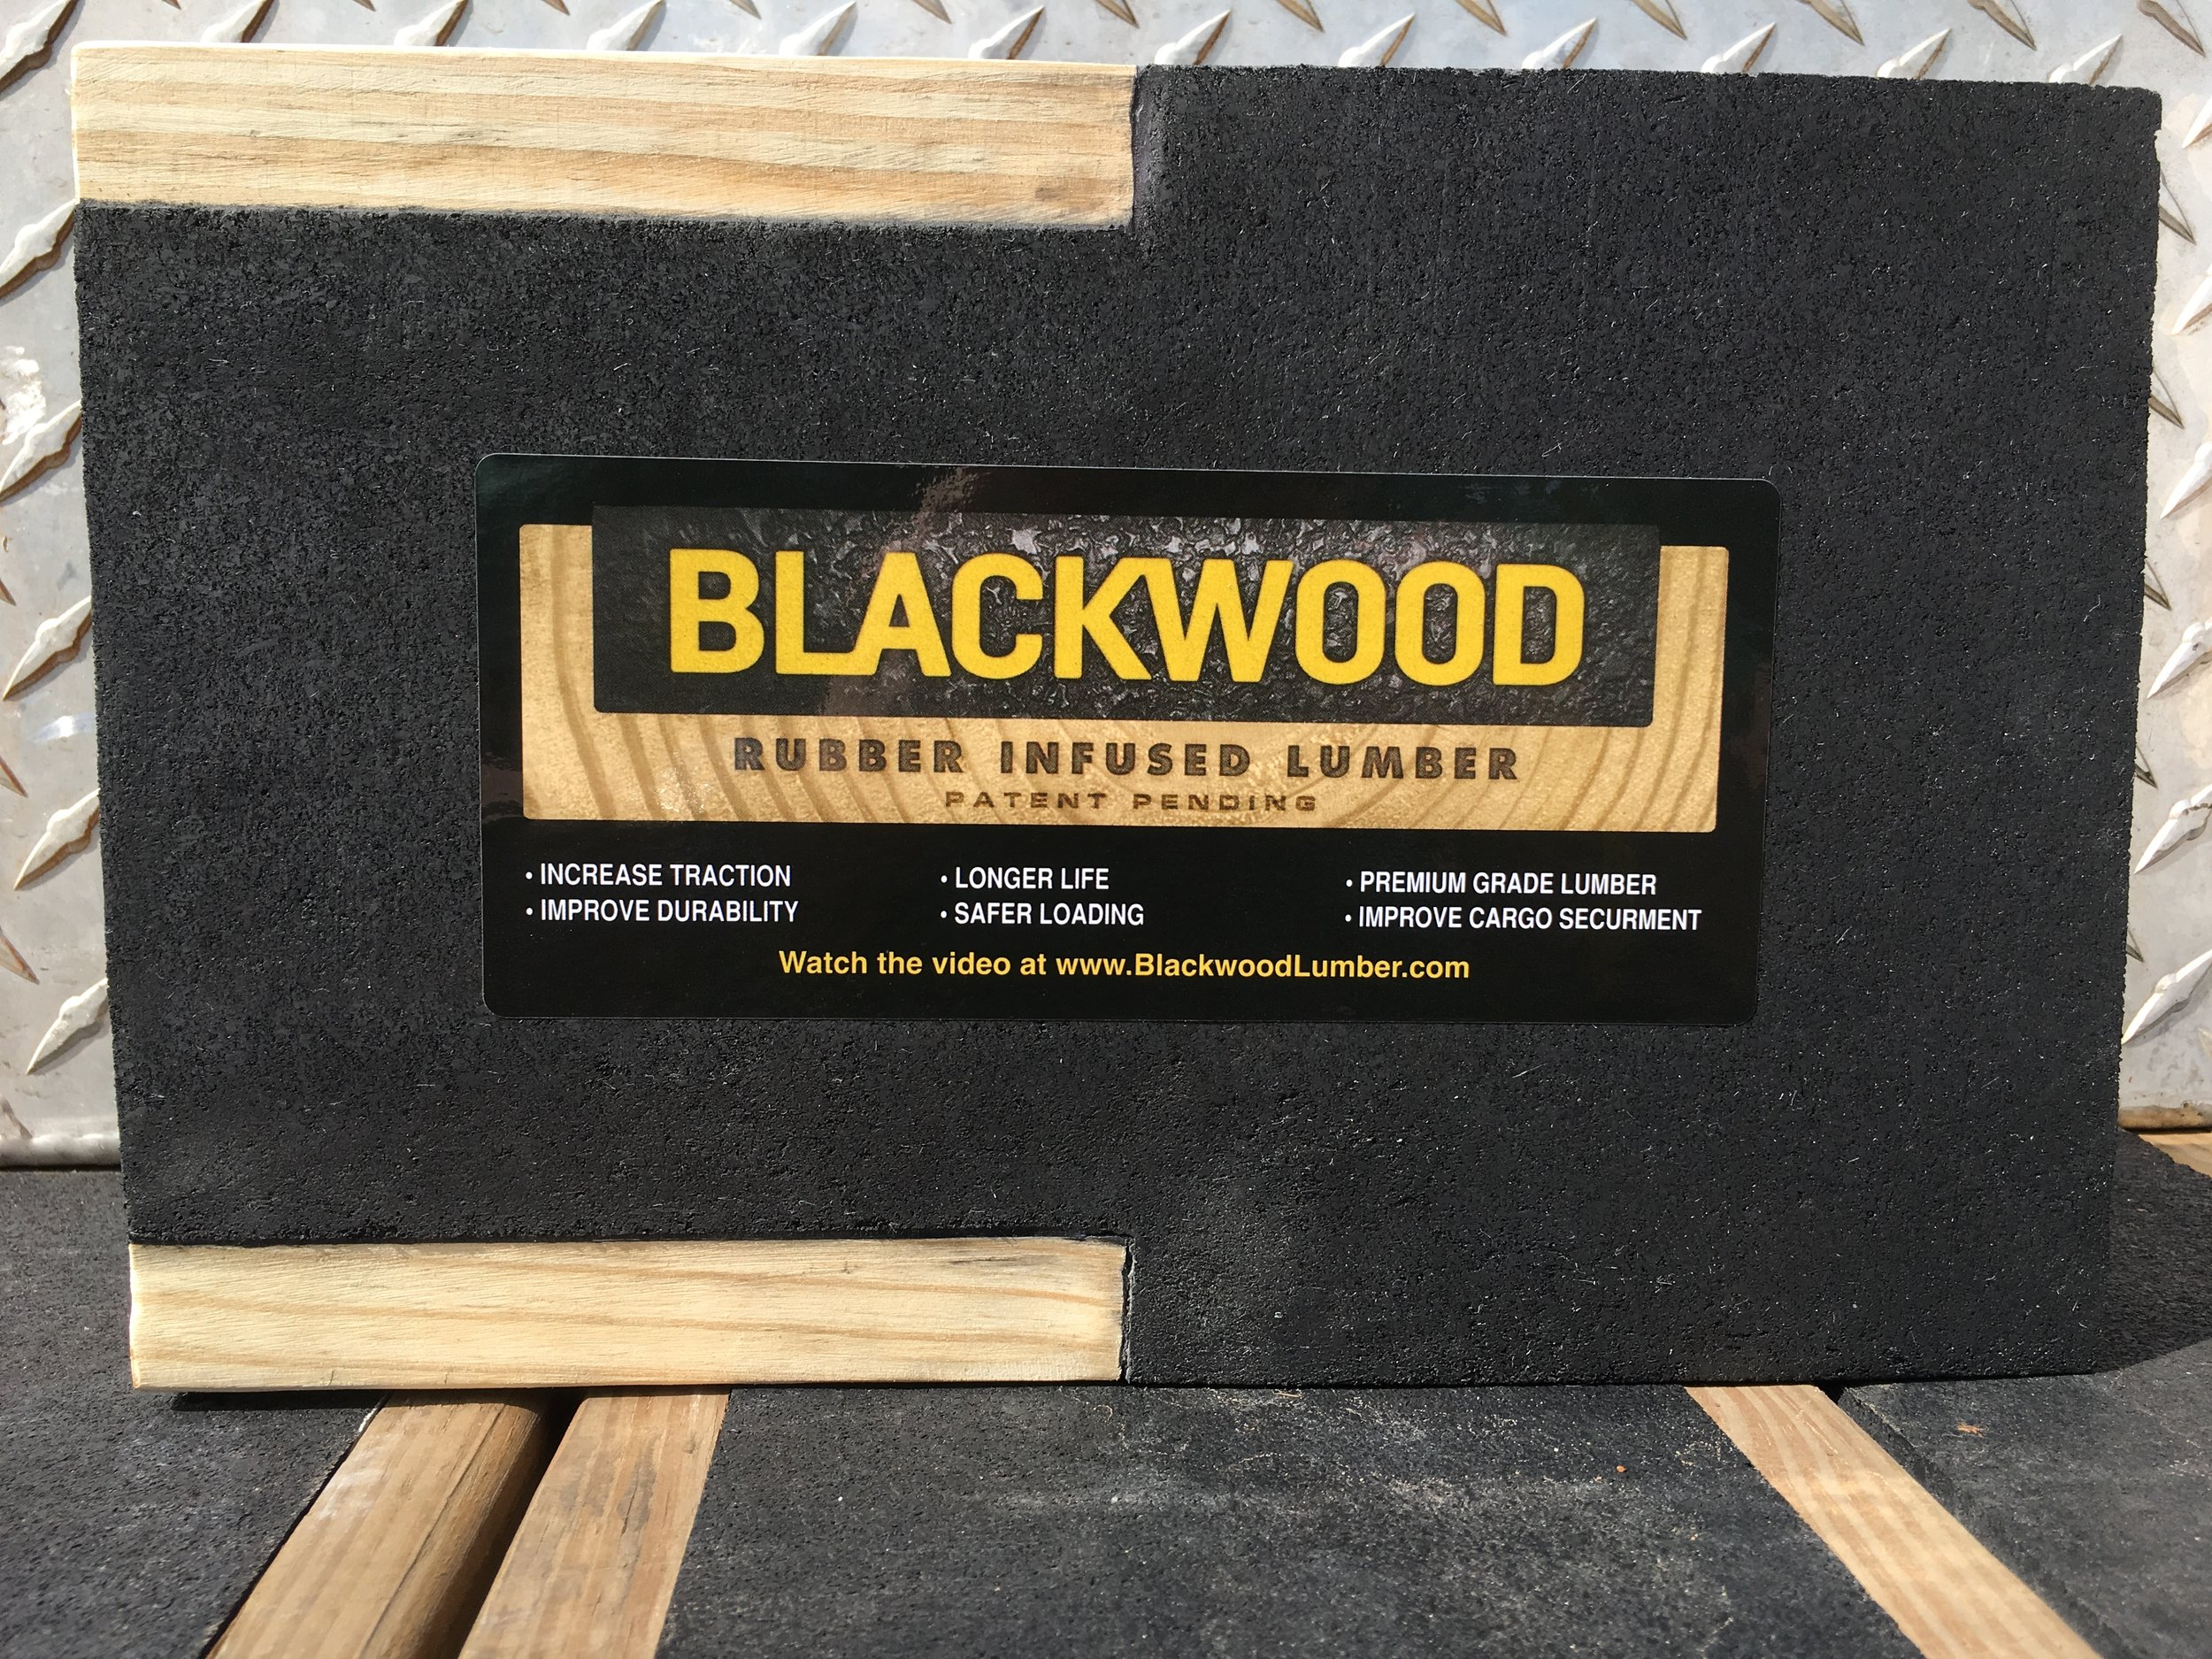 Any surface that benefits from increased traction, strength and durability is a great application for Blackwood Lumber.